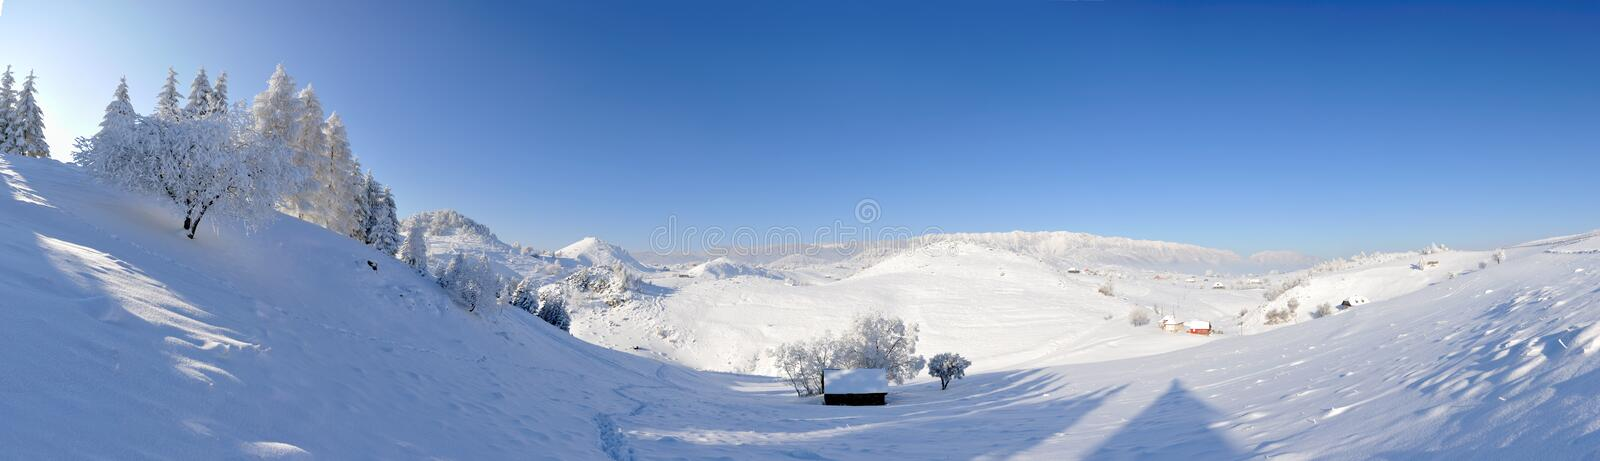 Het landschap van de winter - panorama stock fotografie